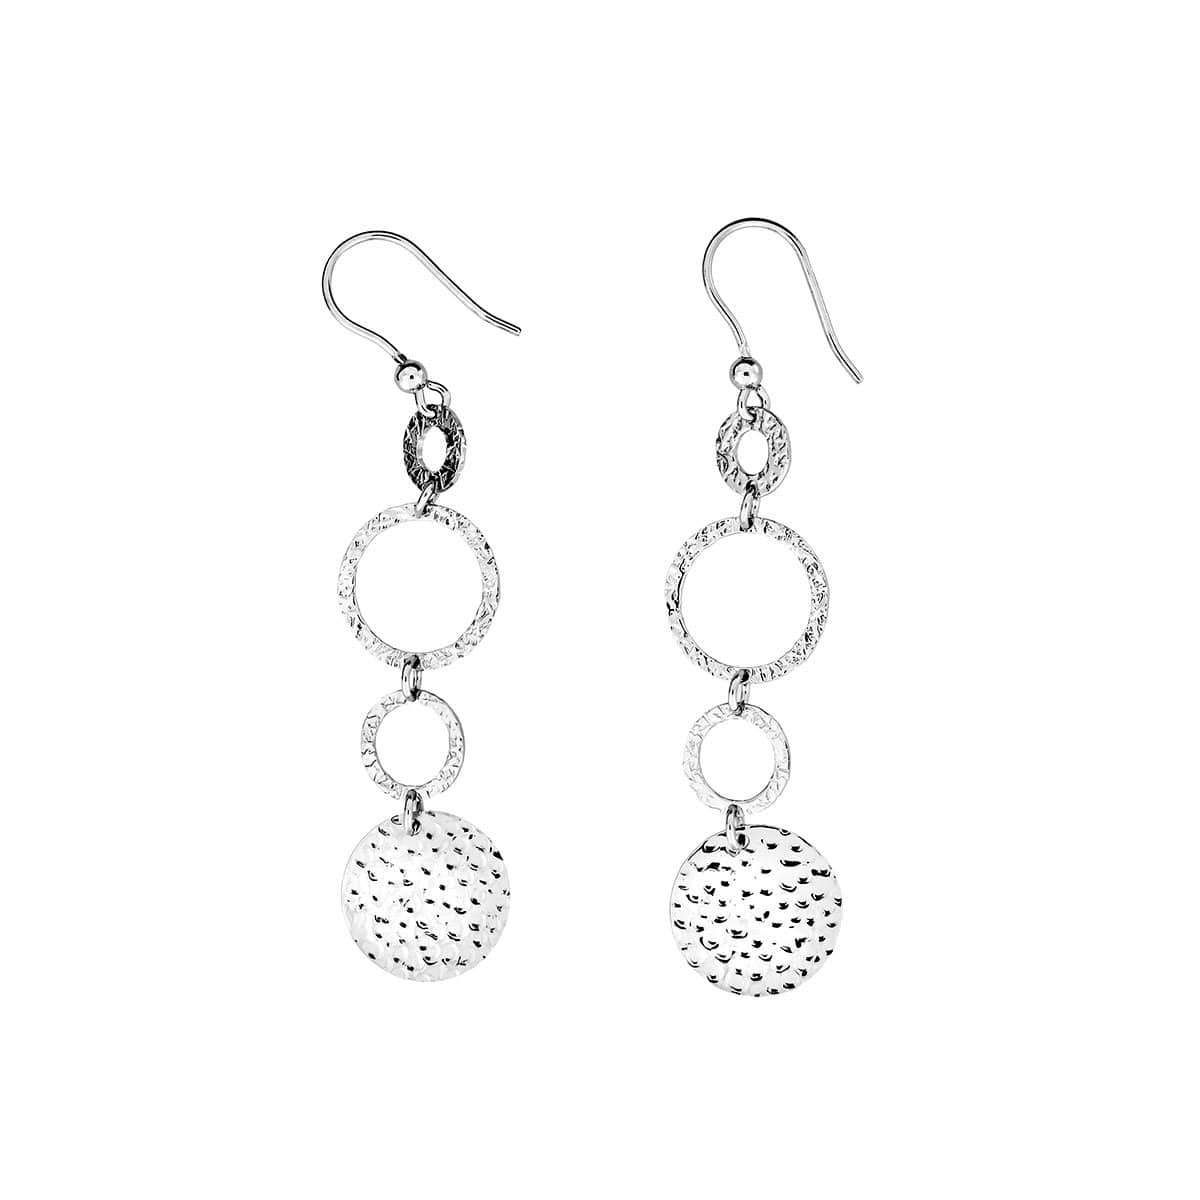 Coniston Hammered Silver Drop Earrings